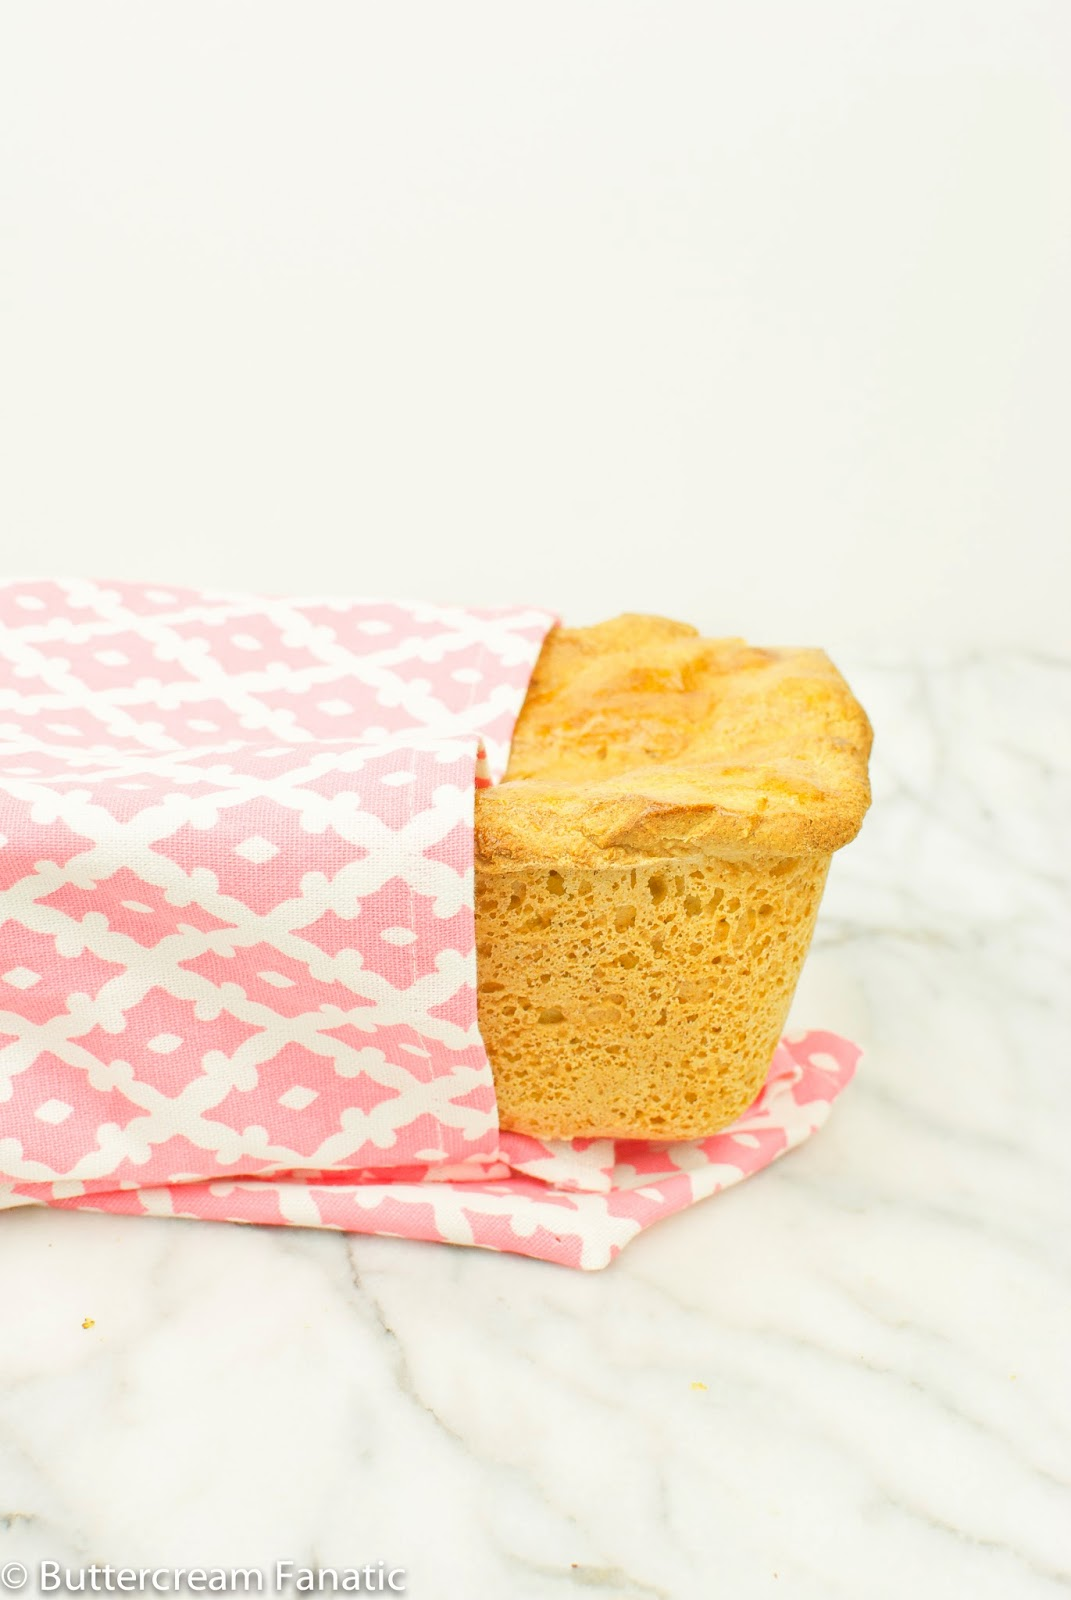 The BEST #glutenfree sandwich bread is homemade, all natural, and contains NO xanthan gum!